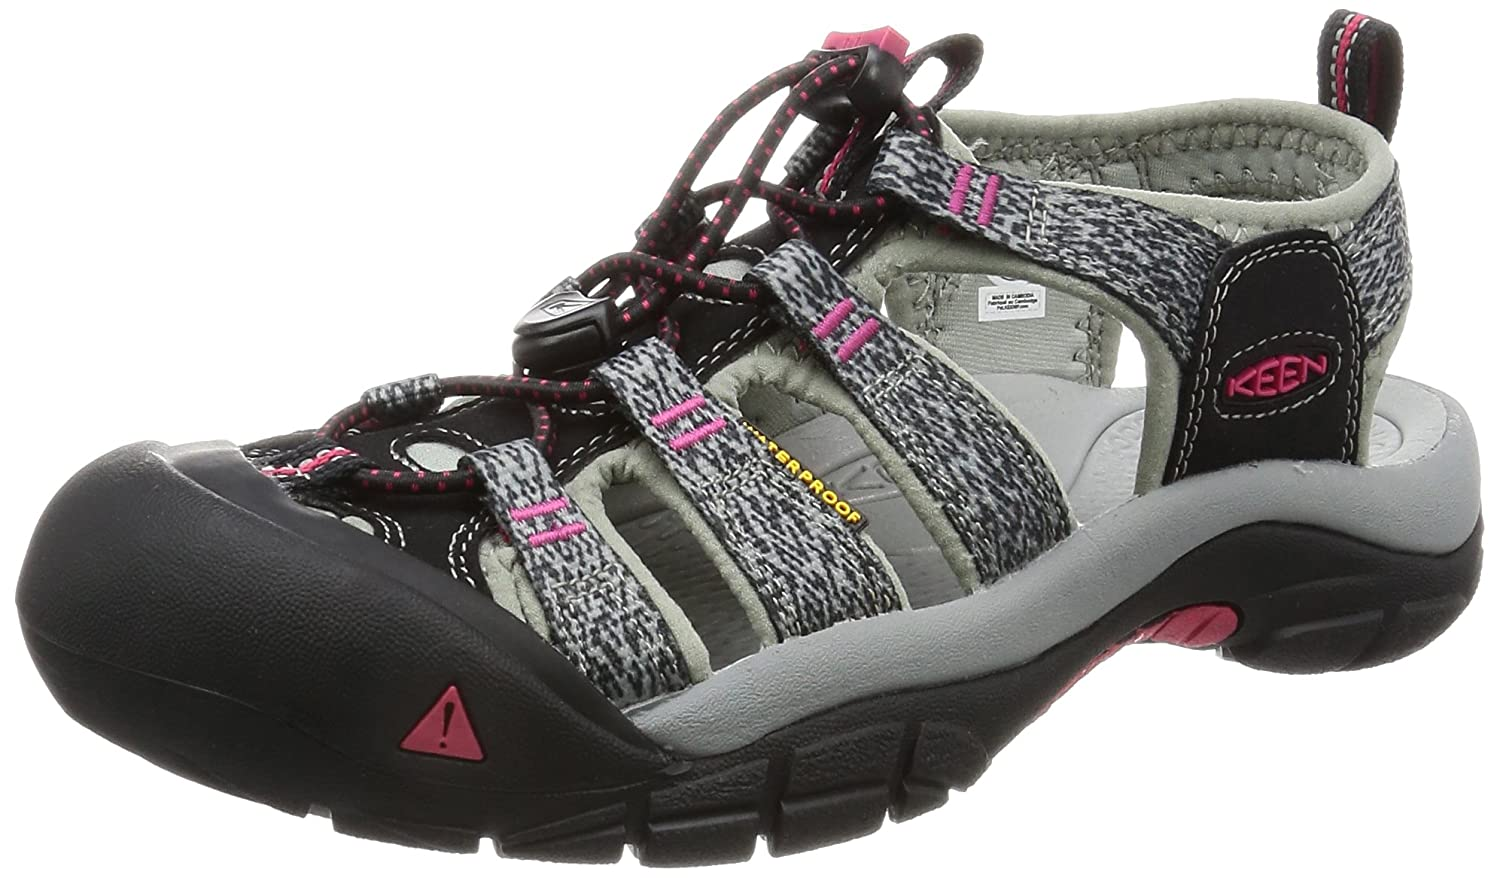 KEEN Women's Newport H2 Sandal B01H763QKU 6 B(M) US|Black/Bright Rose